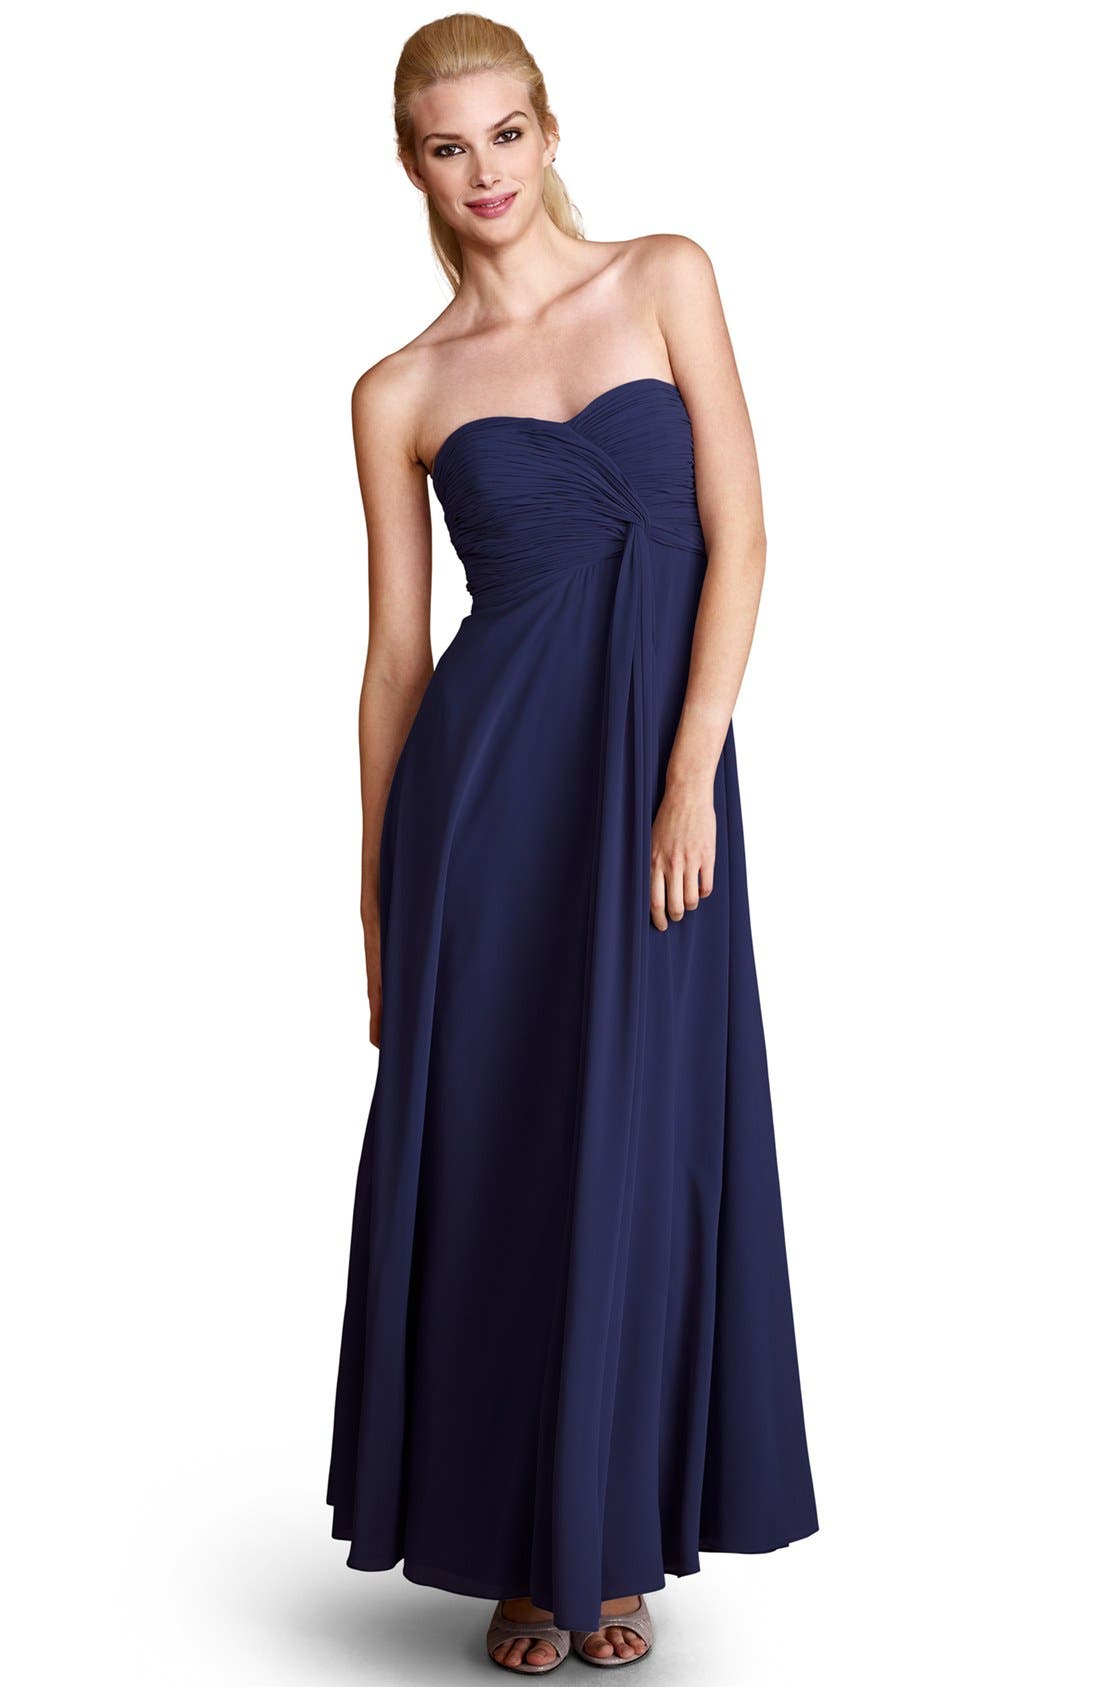 Alternate Image 1 Selected - Donna Morgan 'Lisa' Strapless Front Draped Gown (Online Only)